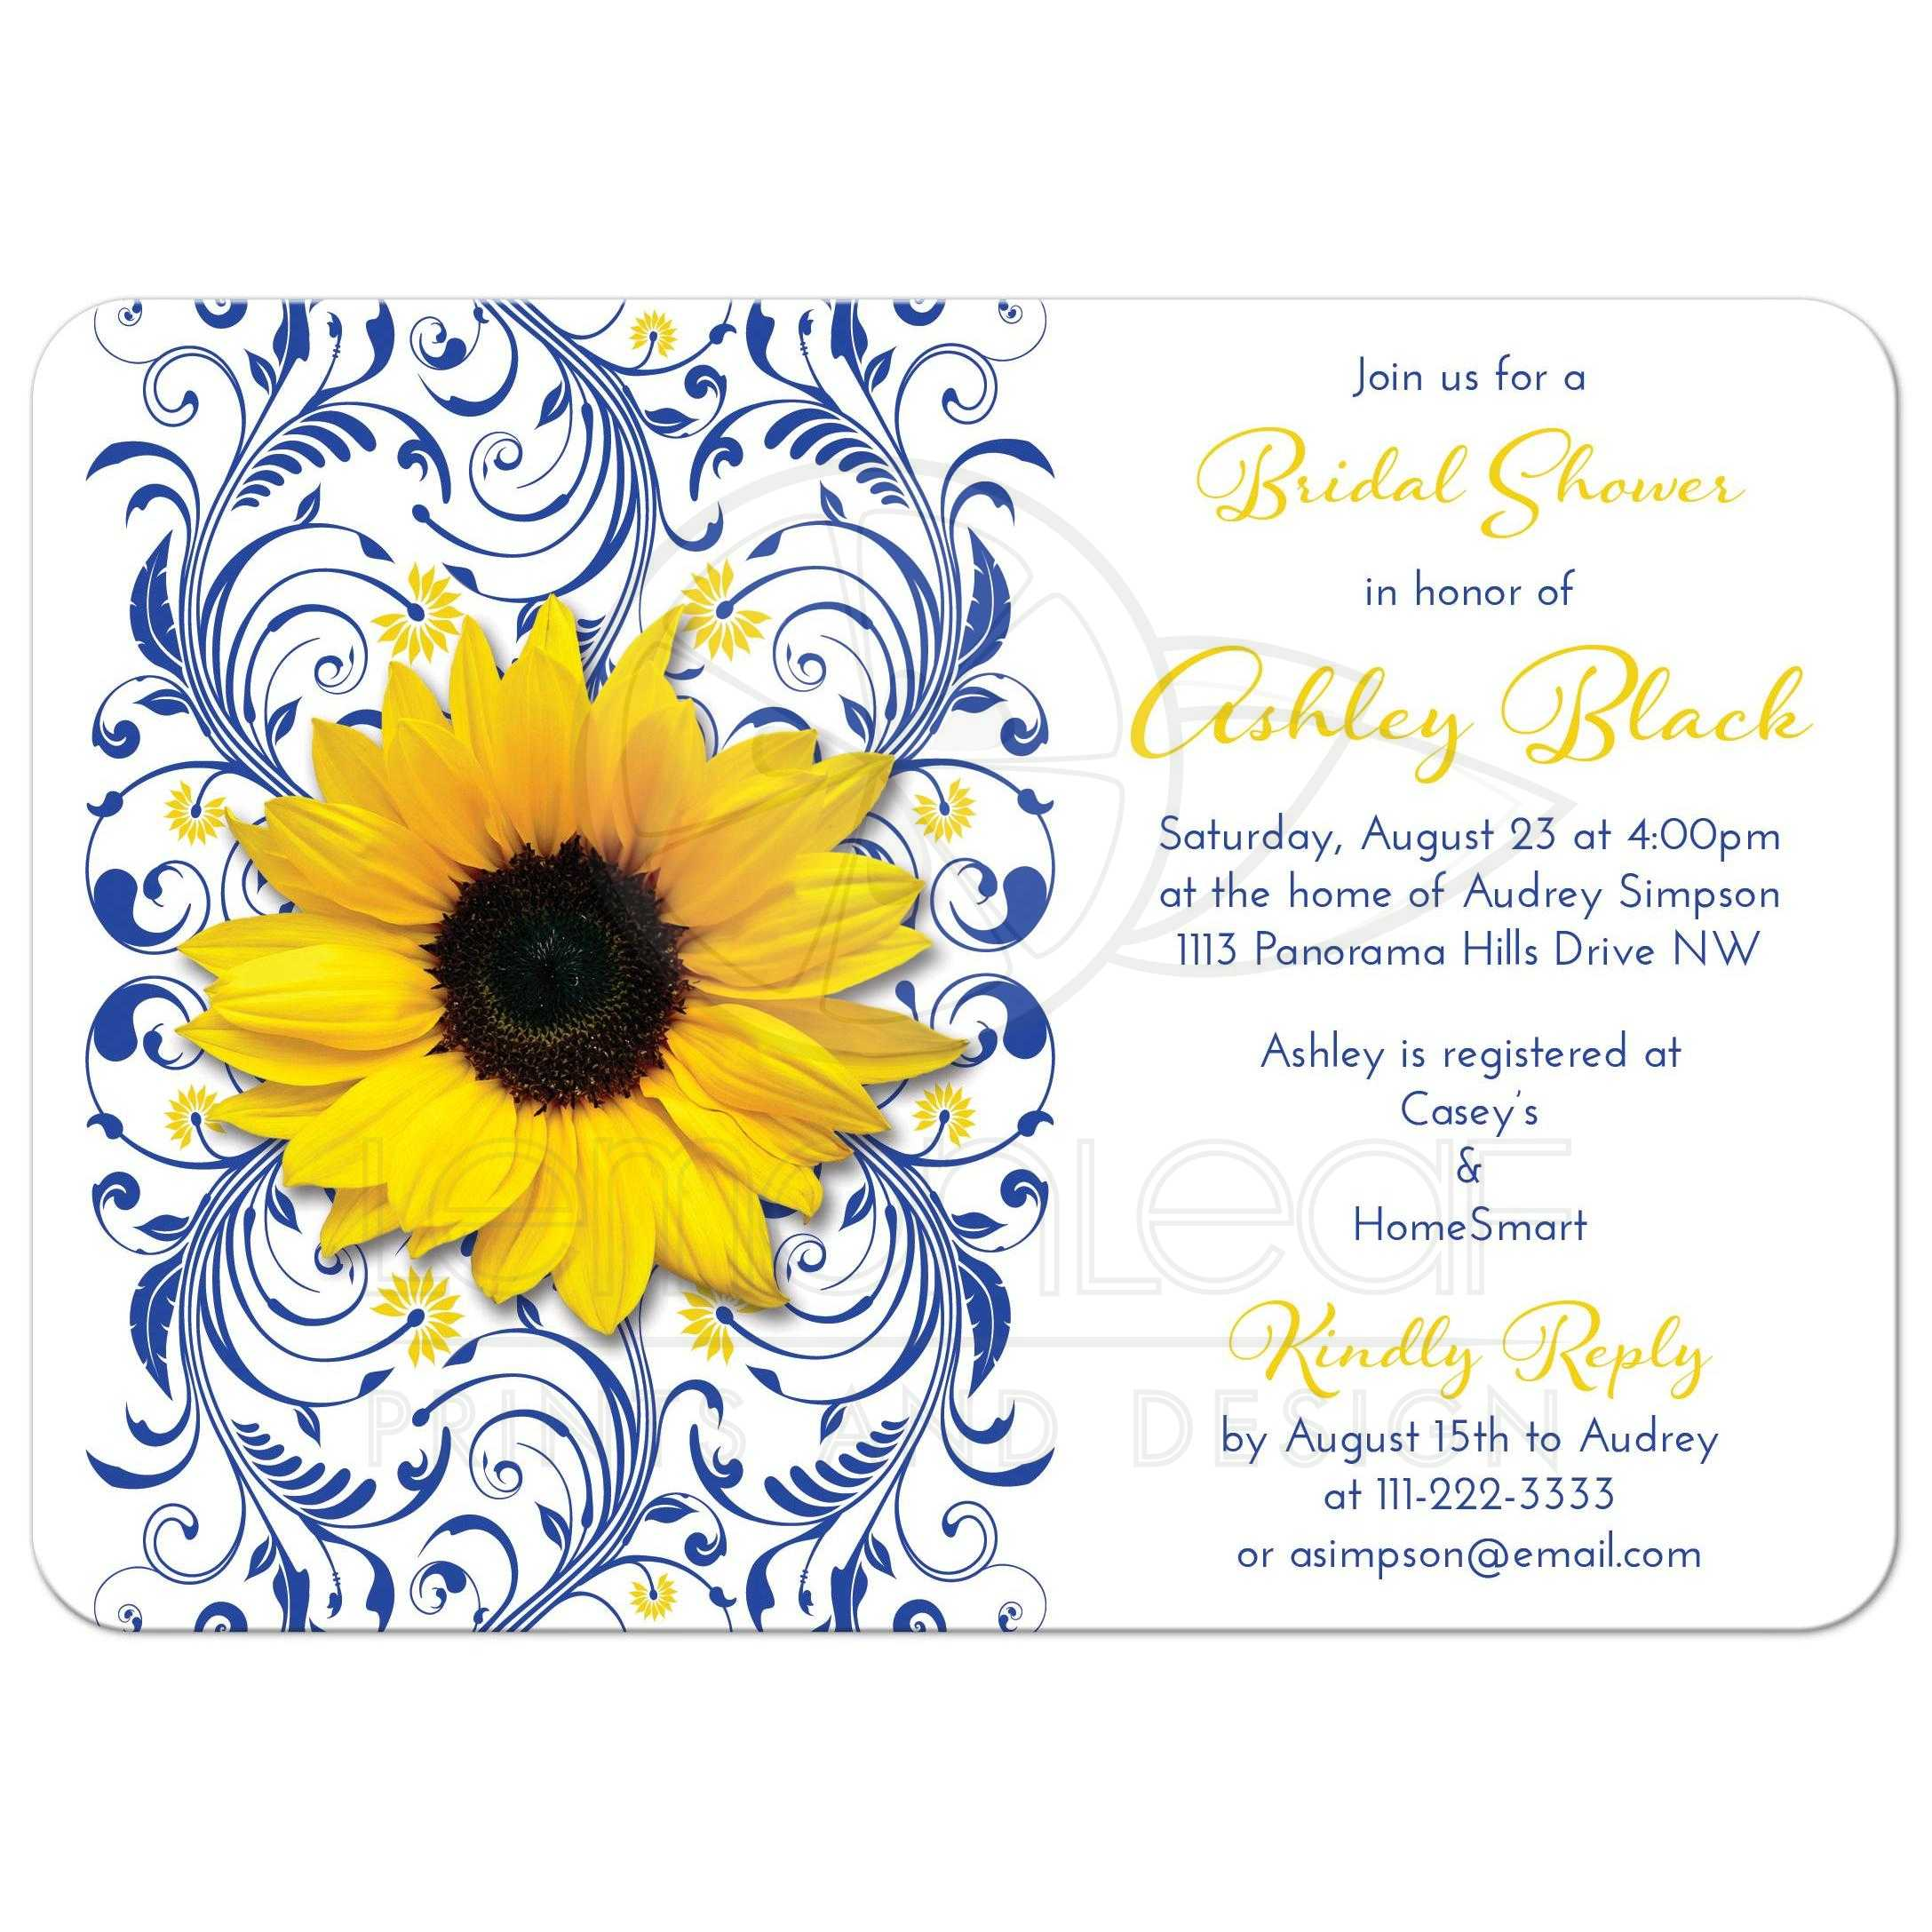 Bridal shower invitation sunflower cobalt blue floral cobalt blue and white floral yellow sunflower elegant bridal shower invitation filmwisefo Images